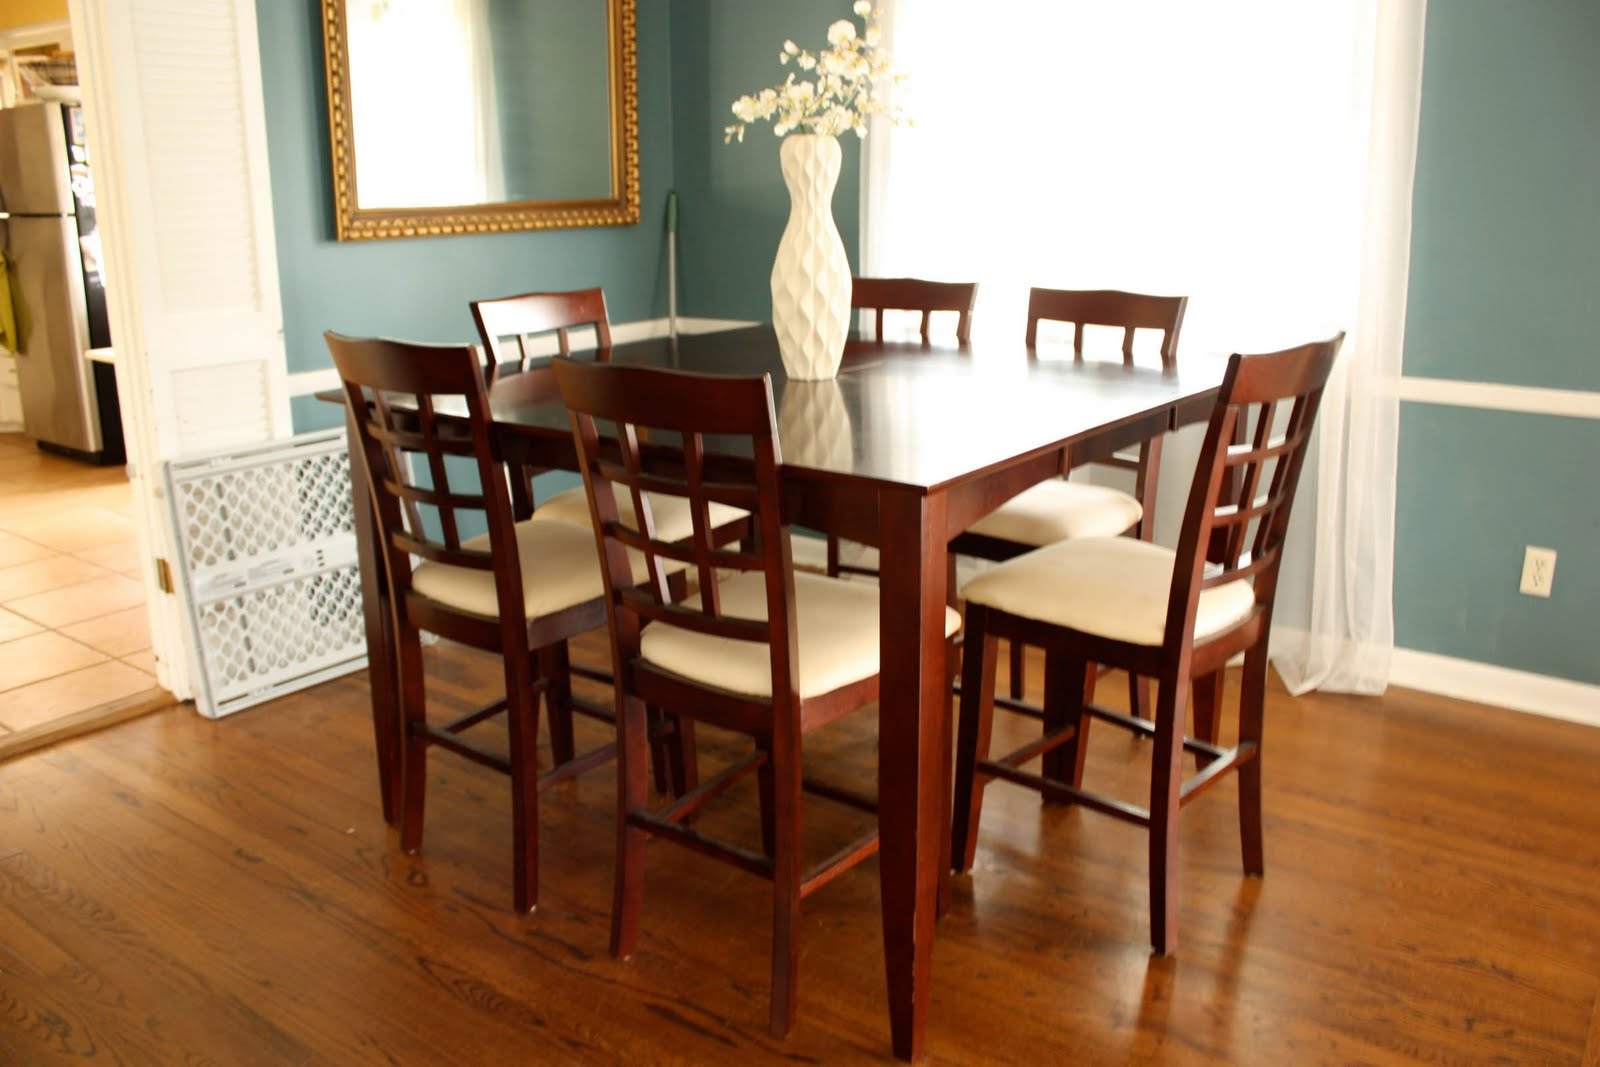 So  after a year and 4 months of living together and me perusing furniture  stores online constantly  I found a few dining tables I really like   and  decided. Babalou  Changes in Dining